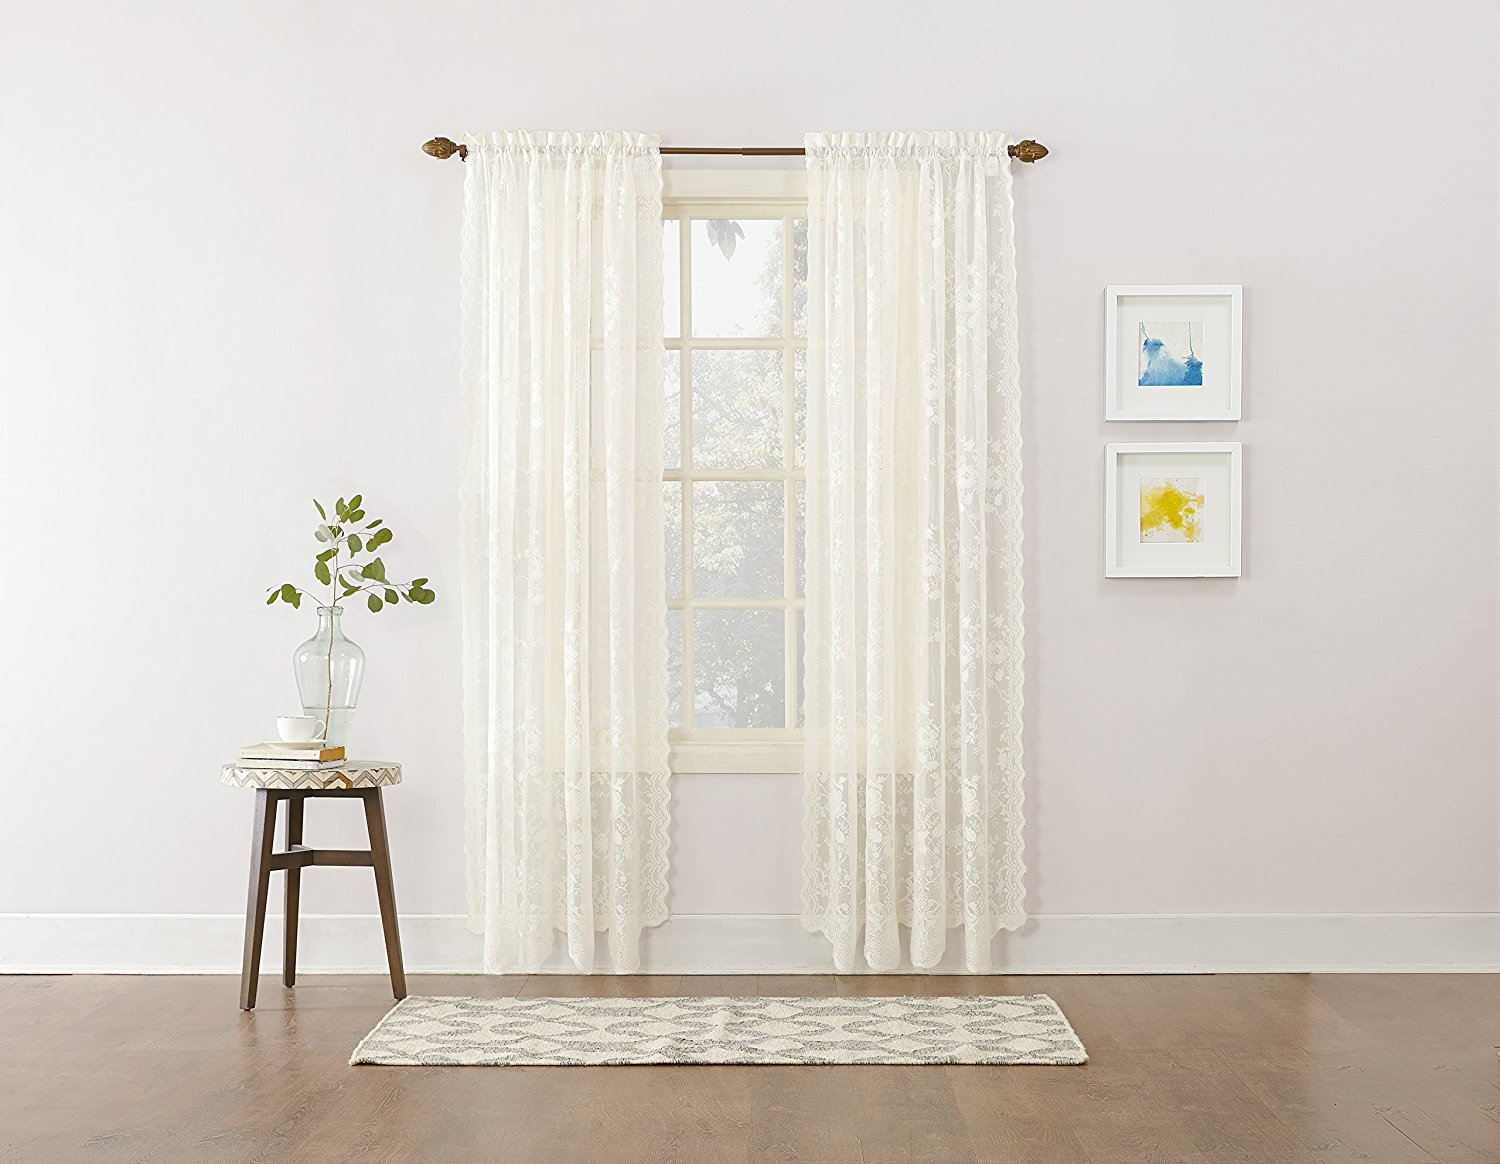 alison floral lace sheer rod pocket curtain panel 58 x 63 ivory white sold as one panel by no 918